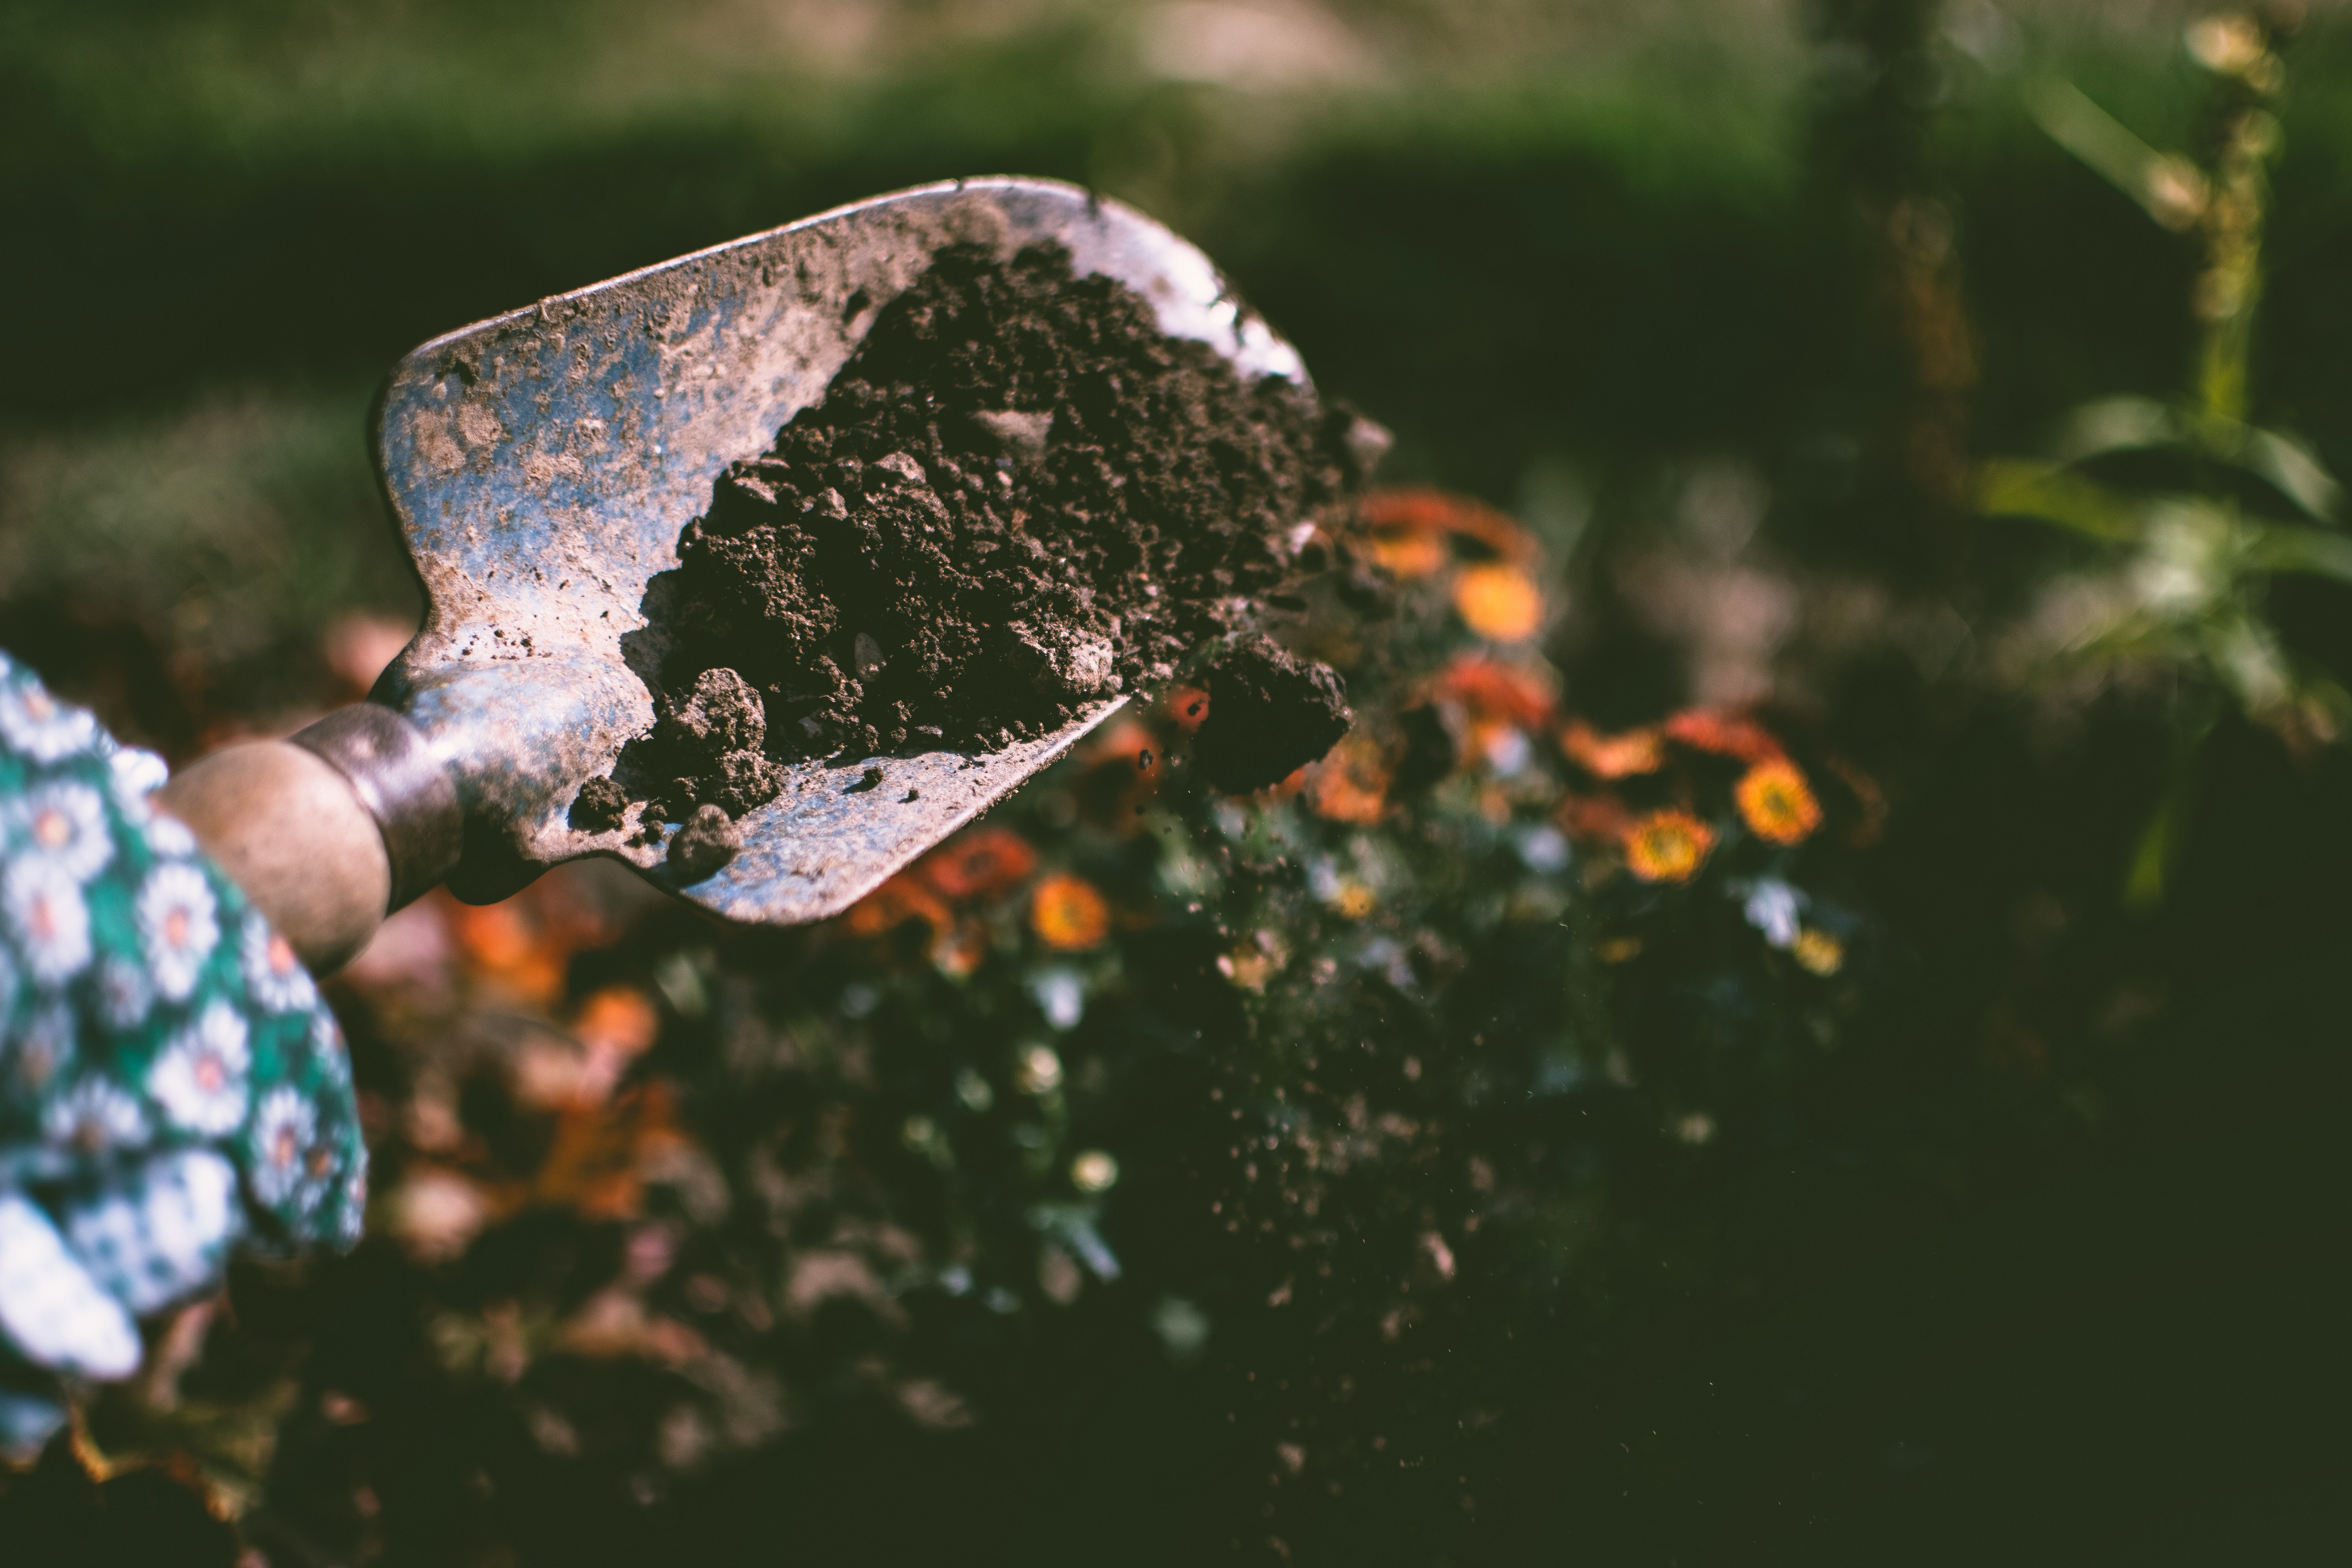 Close up image of a garden shovel holding dark soil with a blurred garden background